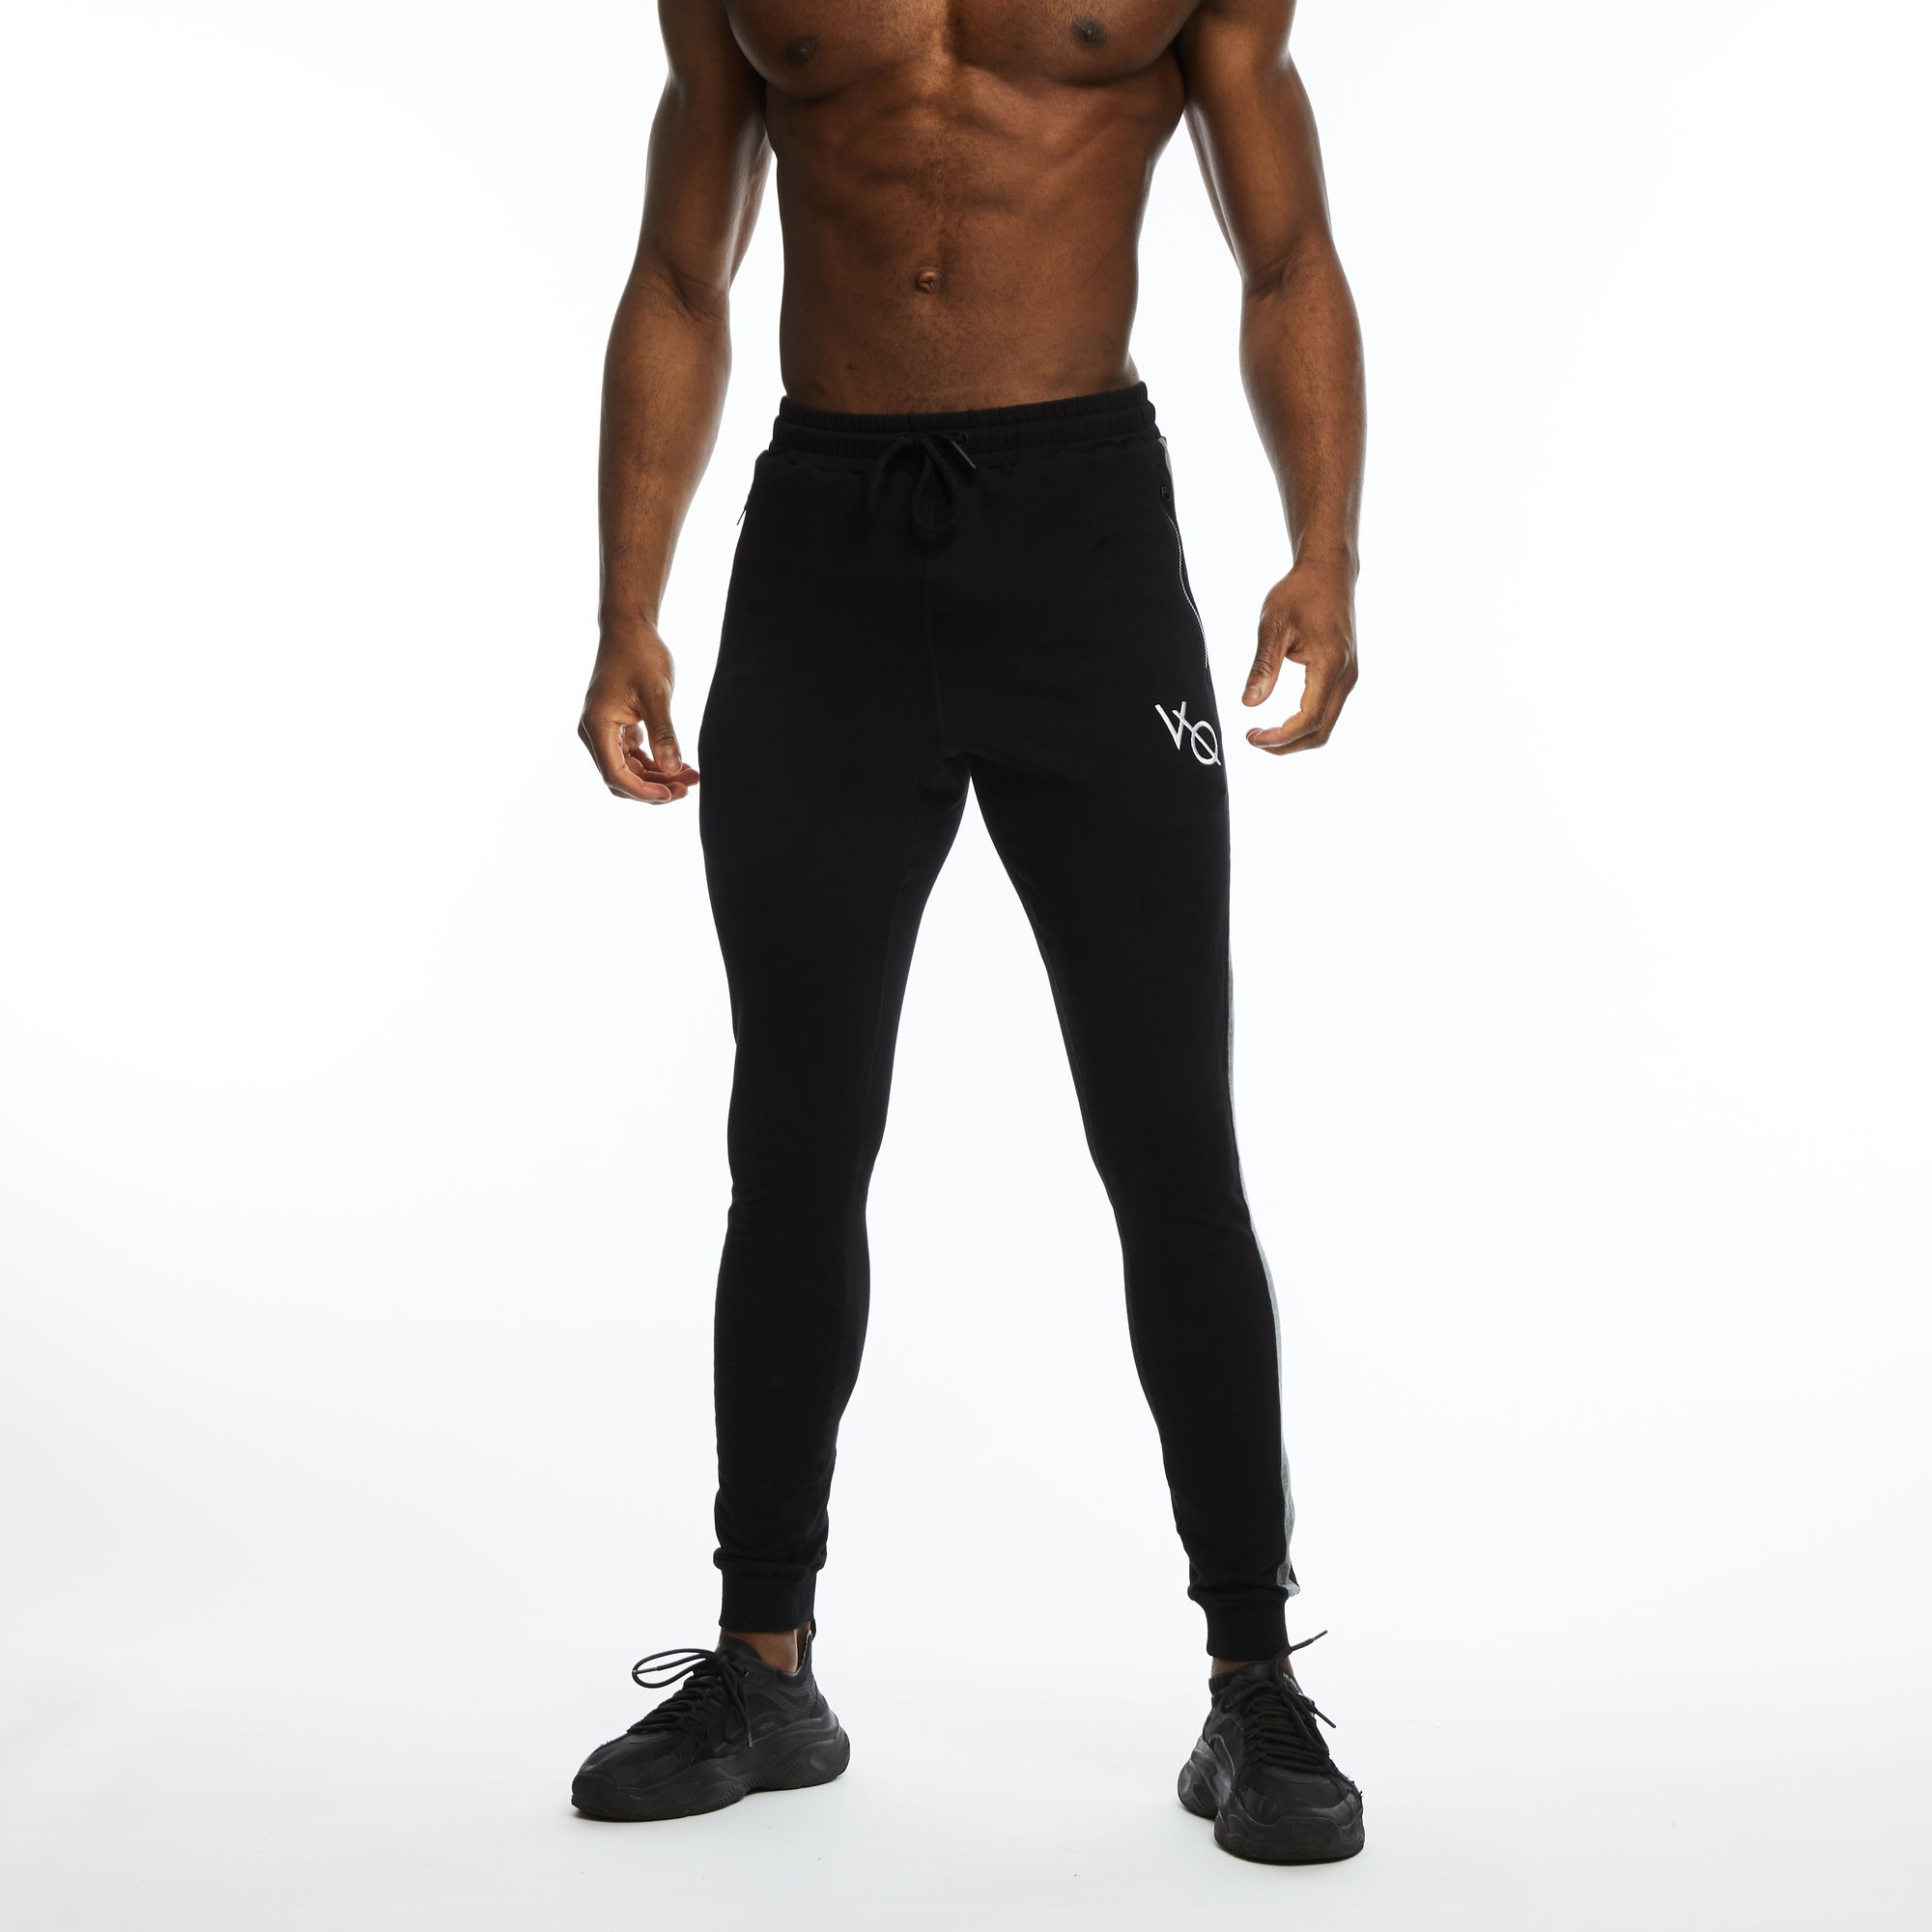 VQFIT Black Eclipse Strike Tapered Sweatpants